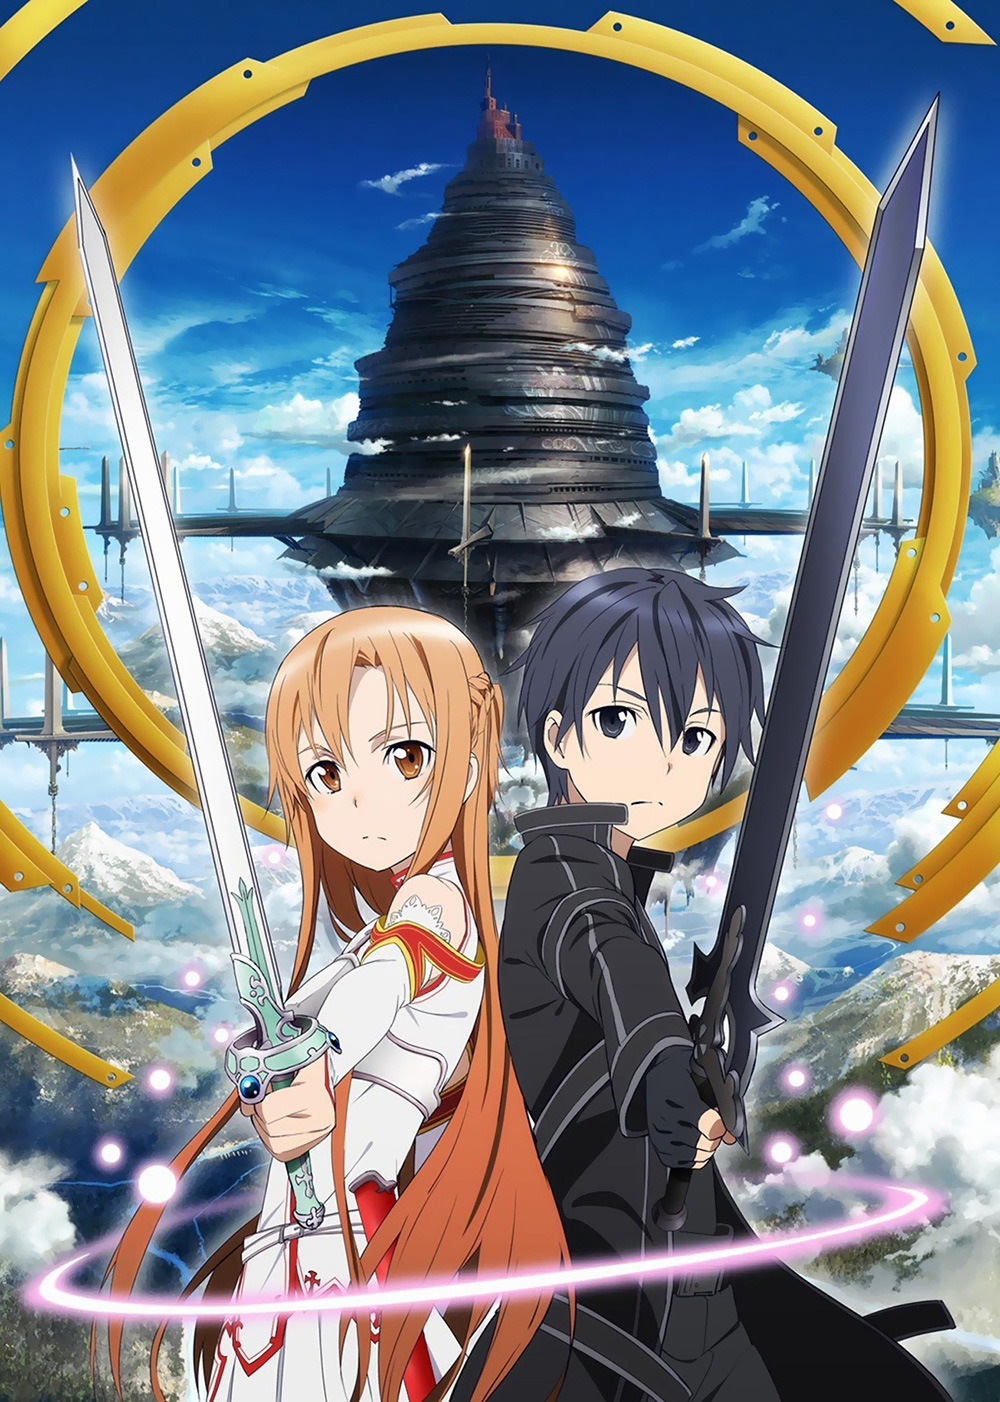 Sword-Art-Online-Anime-Visual